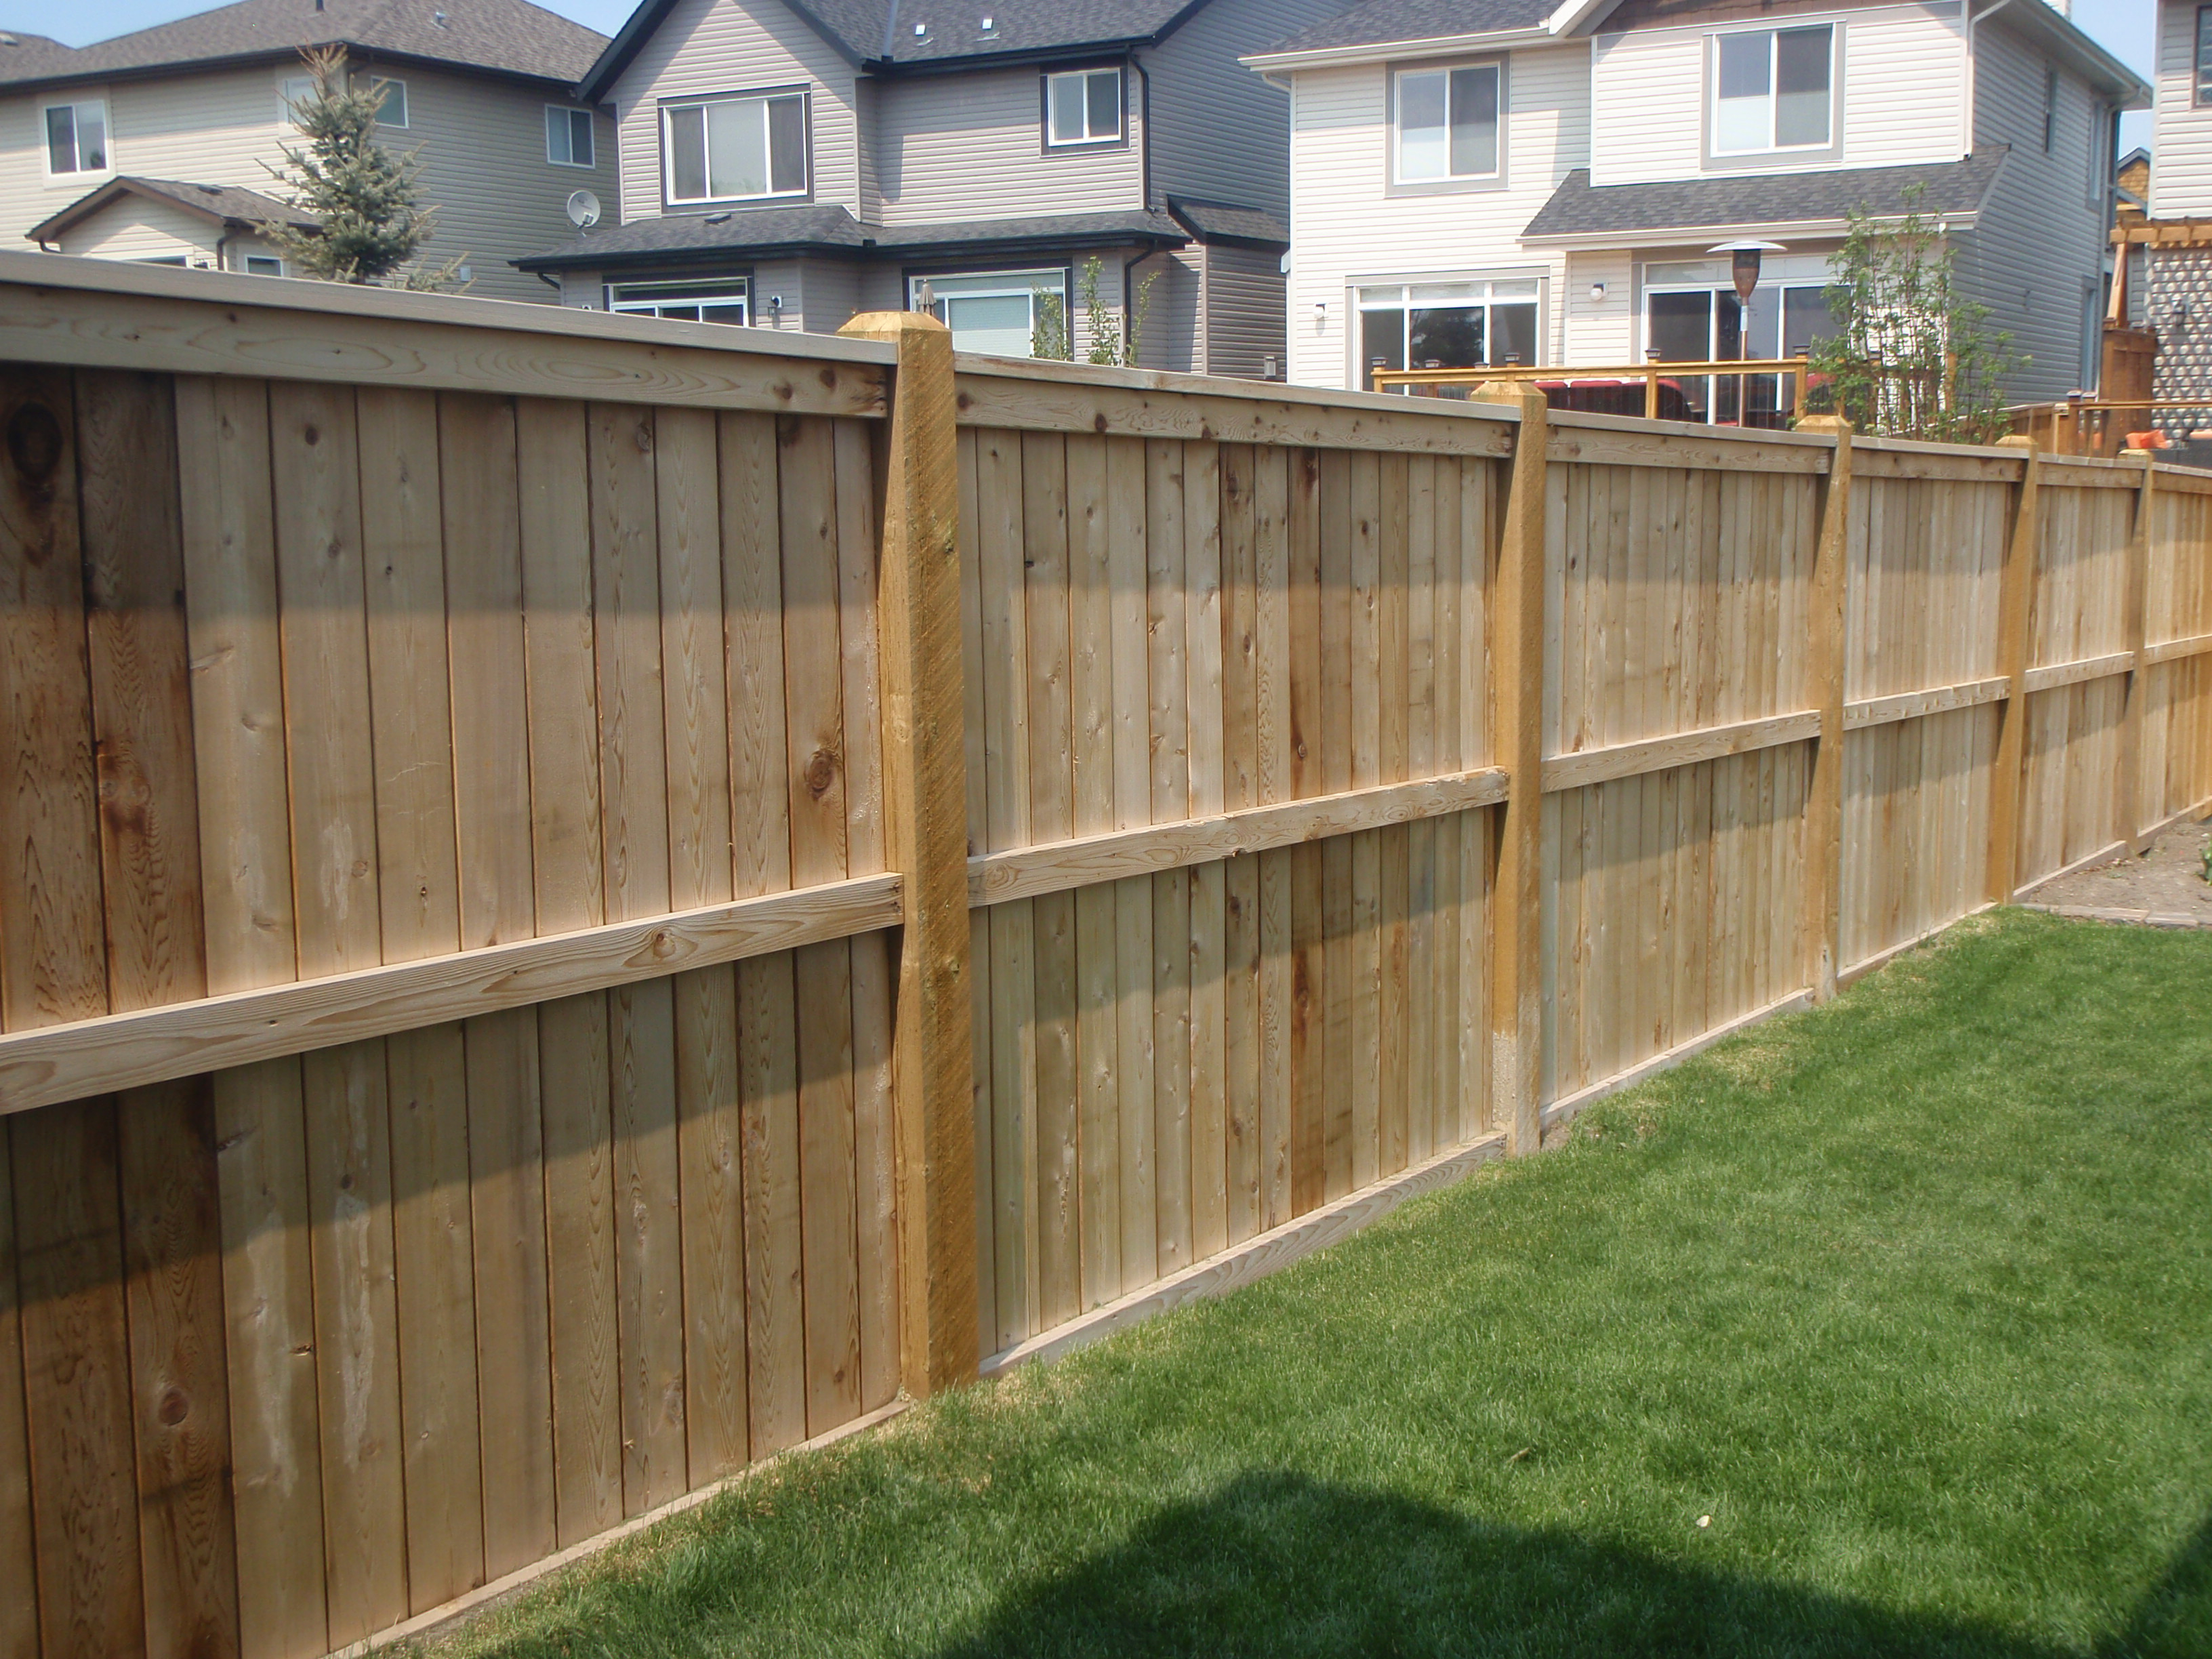 Backyard Fencing Ideas Homesfeed Back Yard Fence Northeast with regard to 12 Some of the Coolest Designs of How to Makeover Backyard Privacy Fence Ideas